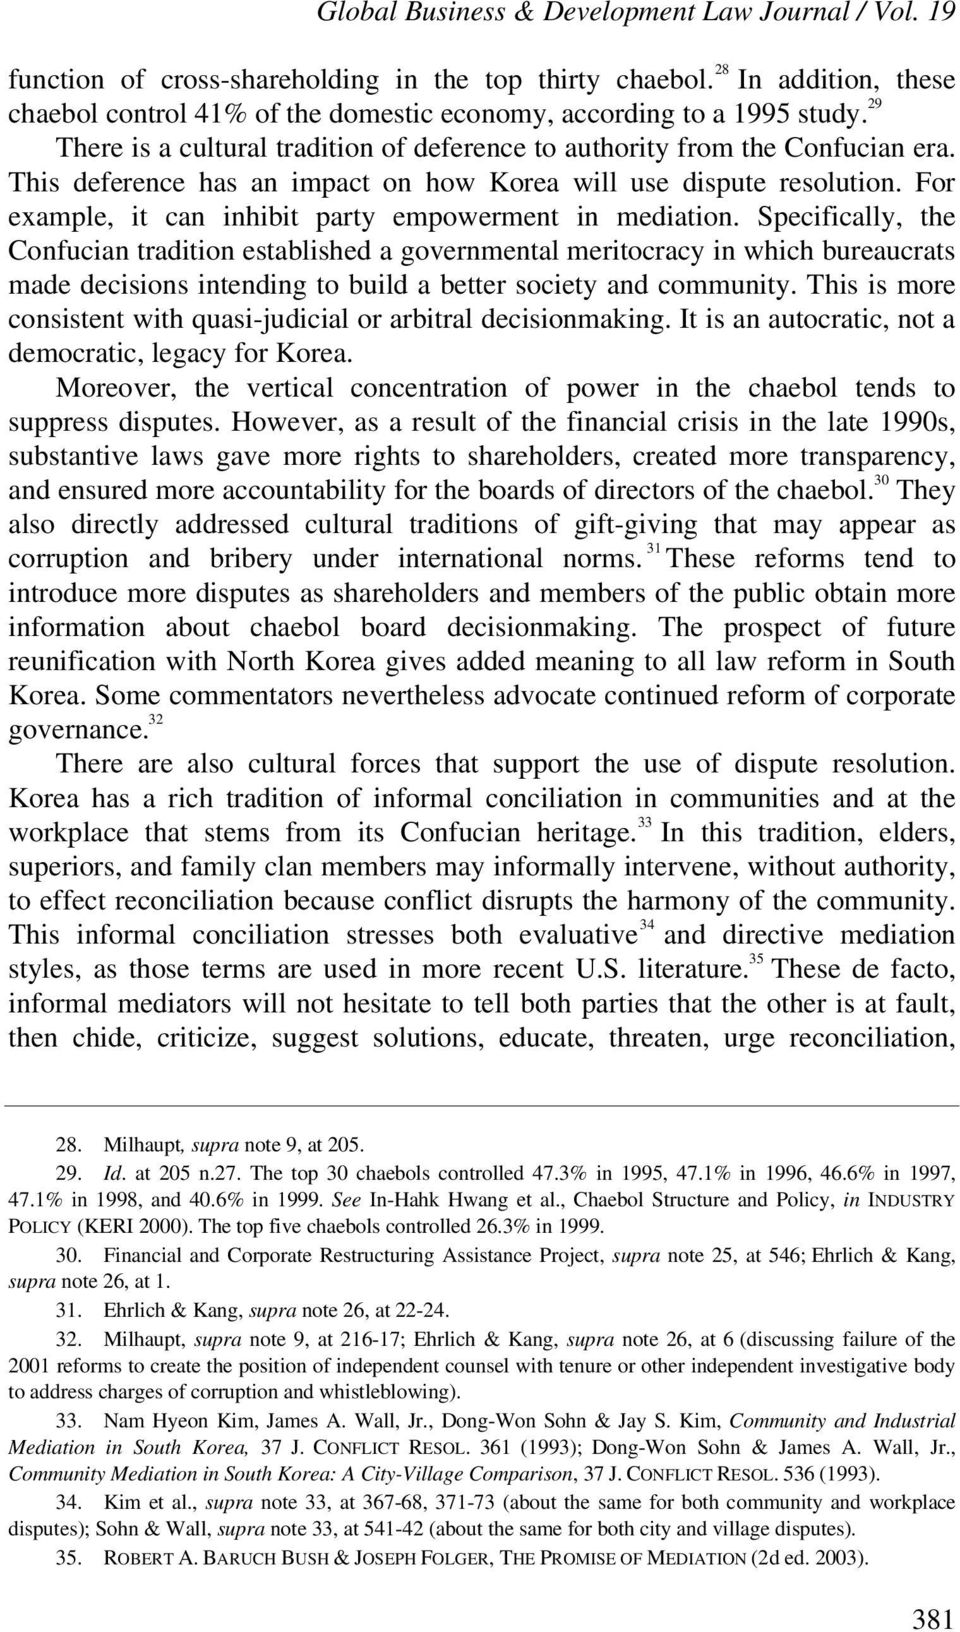 This deference has an impact on how Korea will use dispute resolution. For example, it can inhibit party empowerment in mediation.